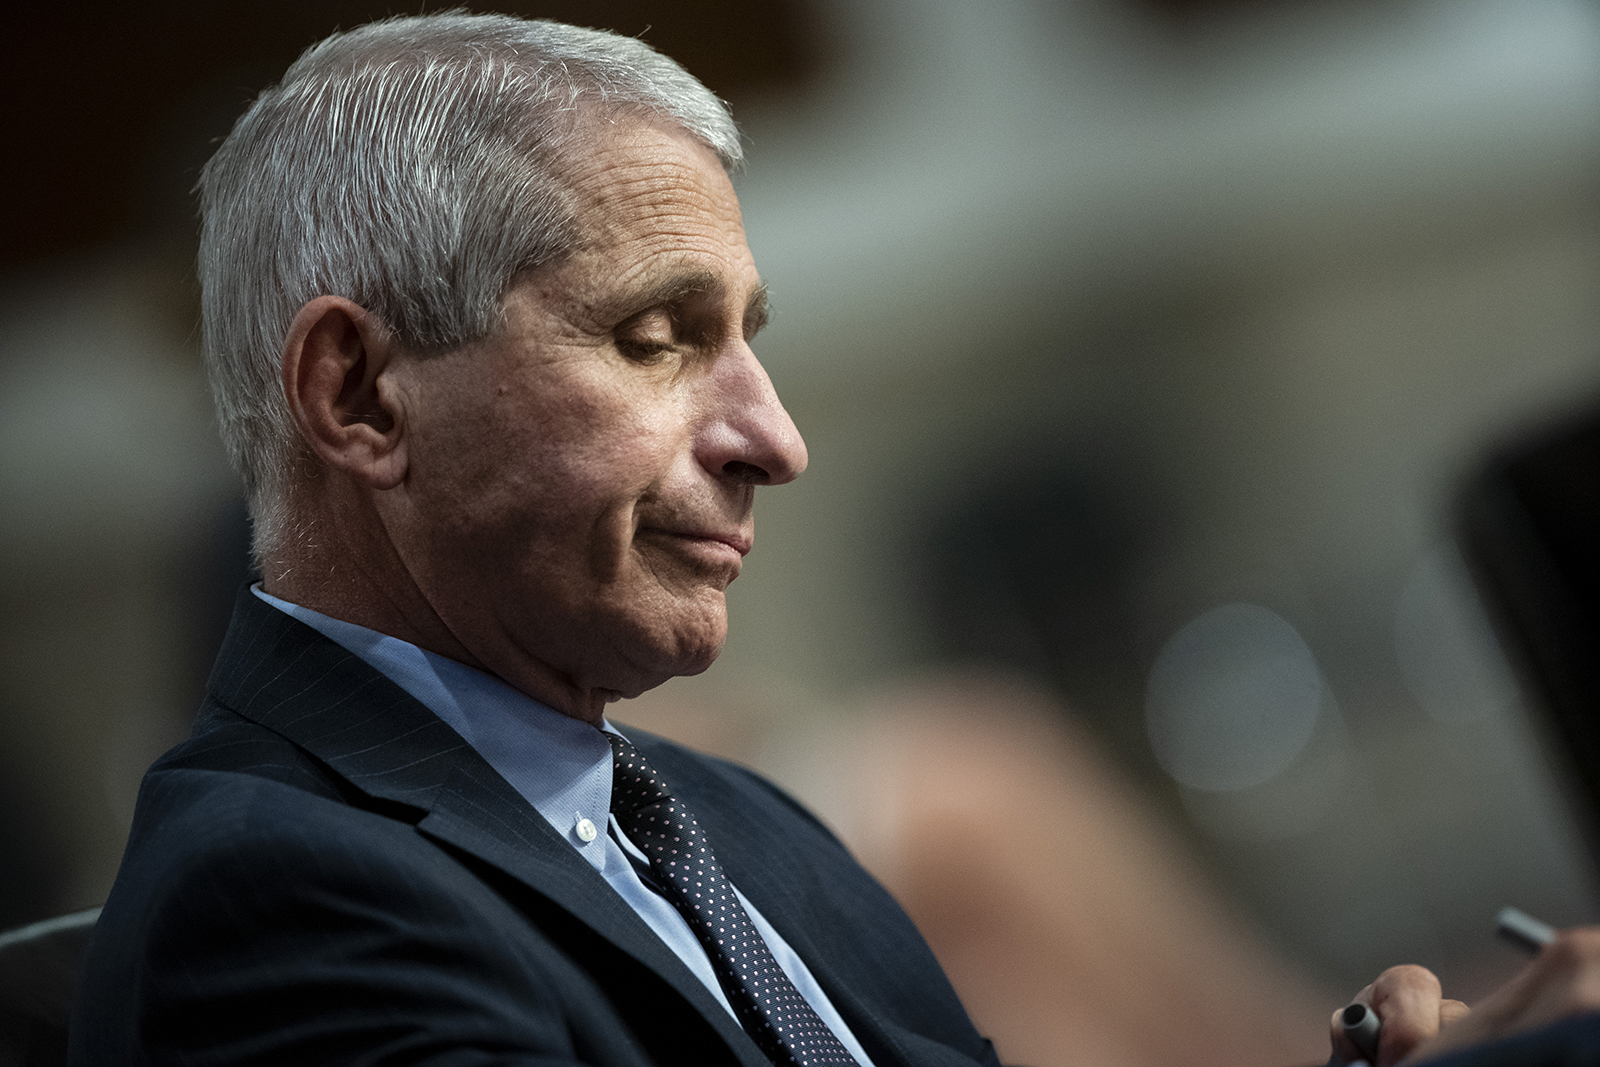 Anthony Fauci, director of the National Institute of Allergy and Infectious Diseases, listens during a Senate Health, Education, Labor and Pensions Committee hearing in Washington, DC on June 30.